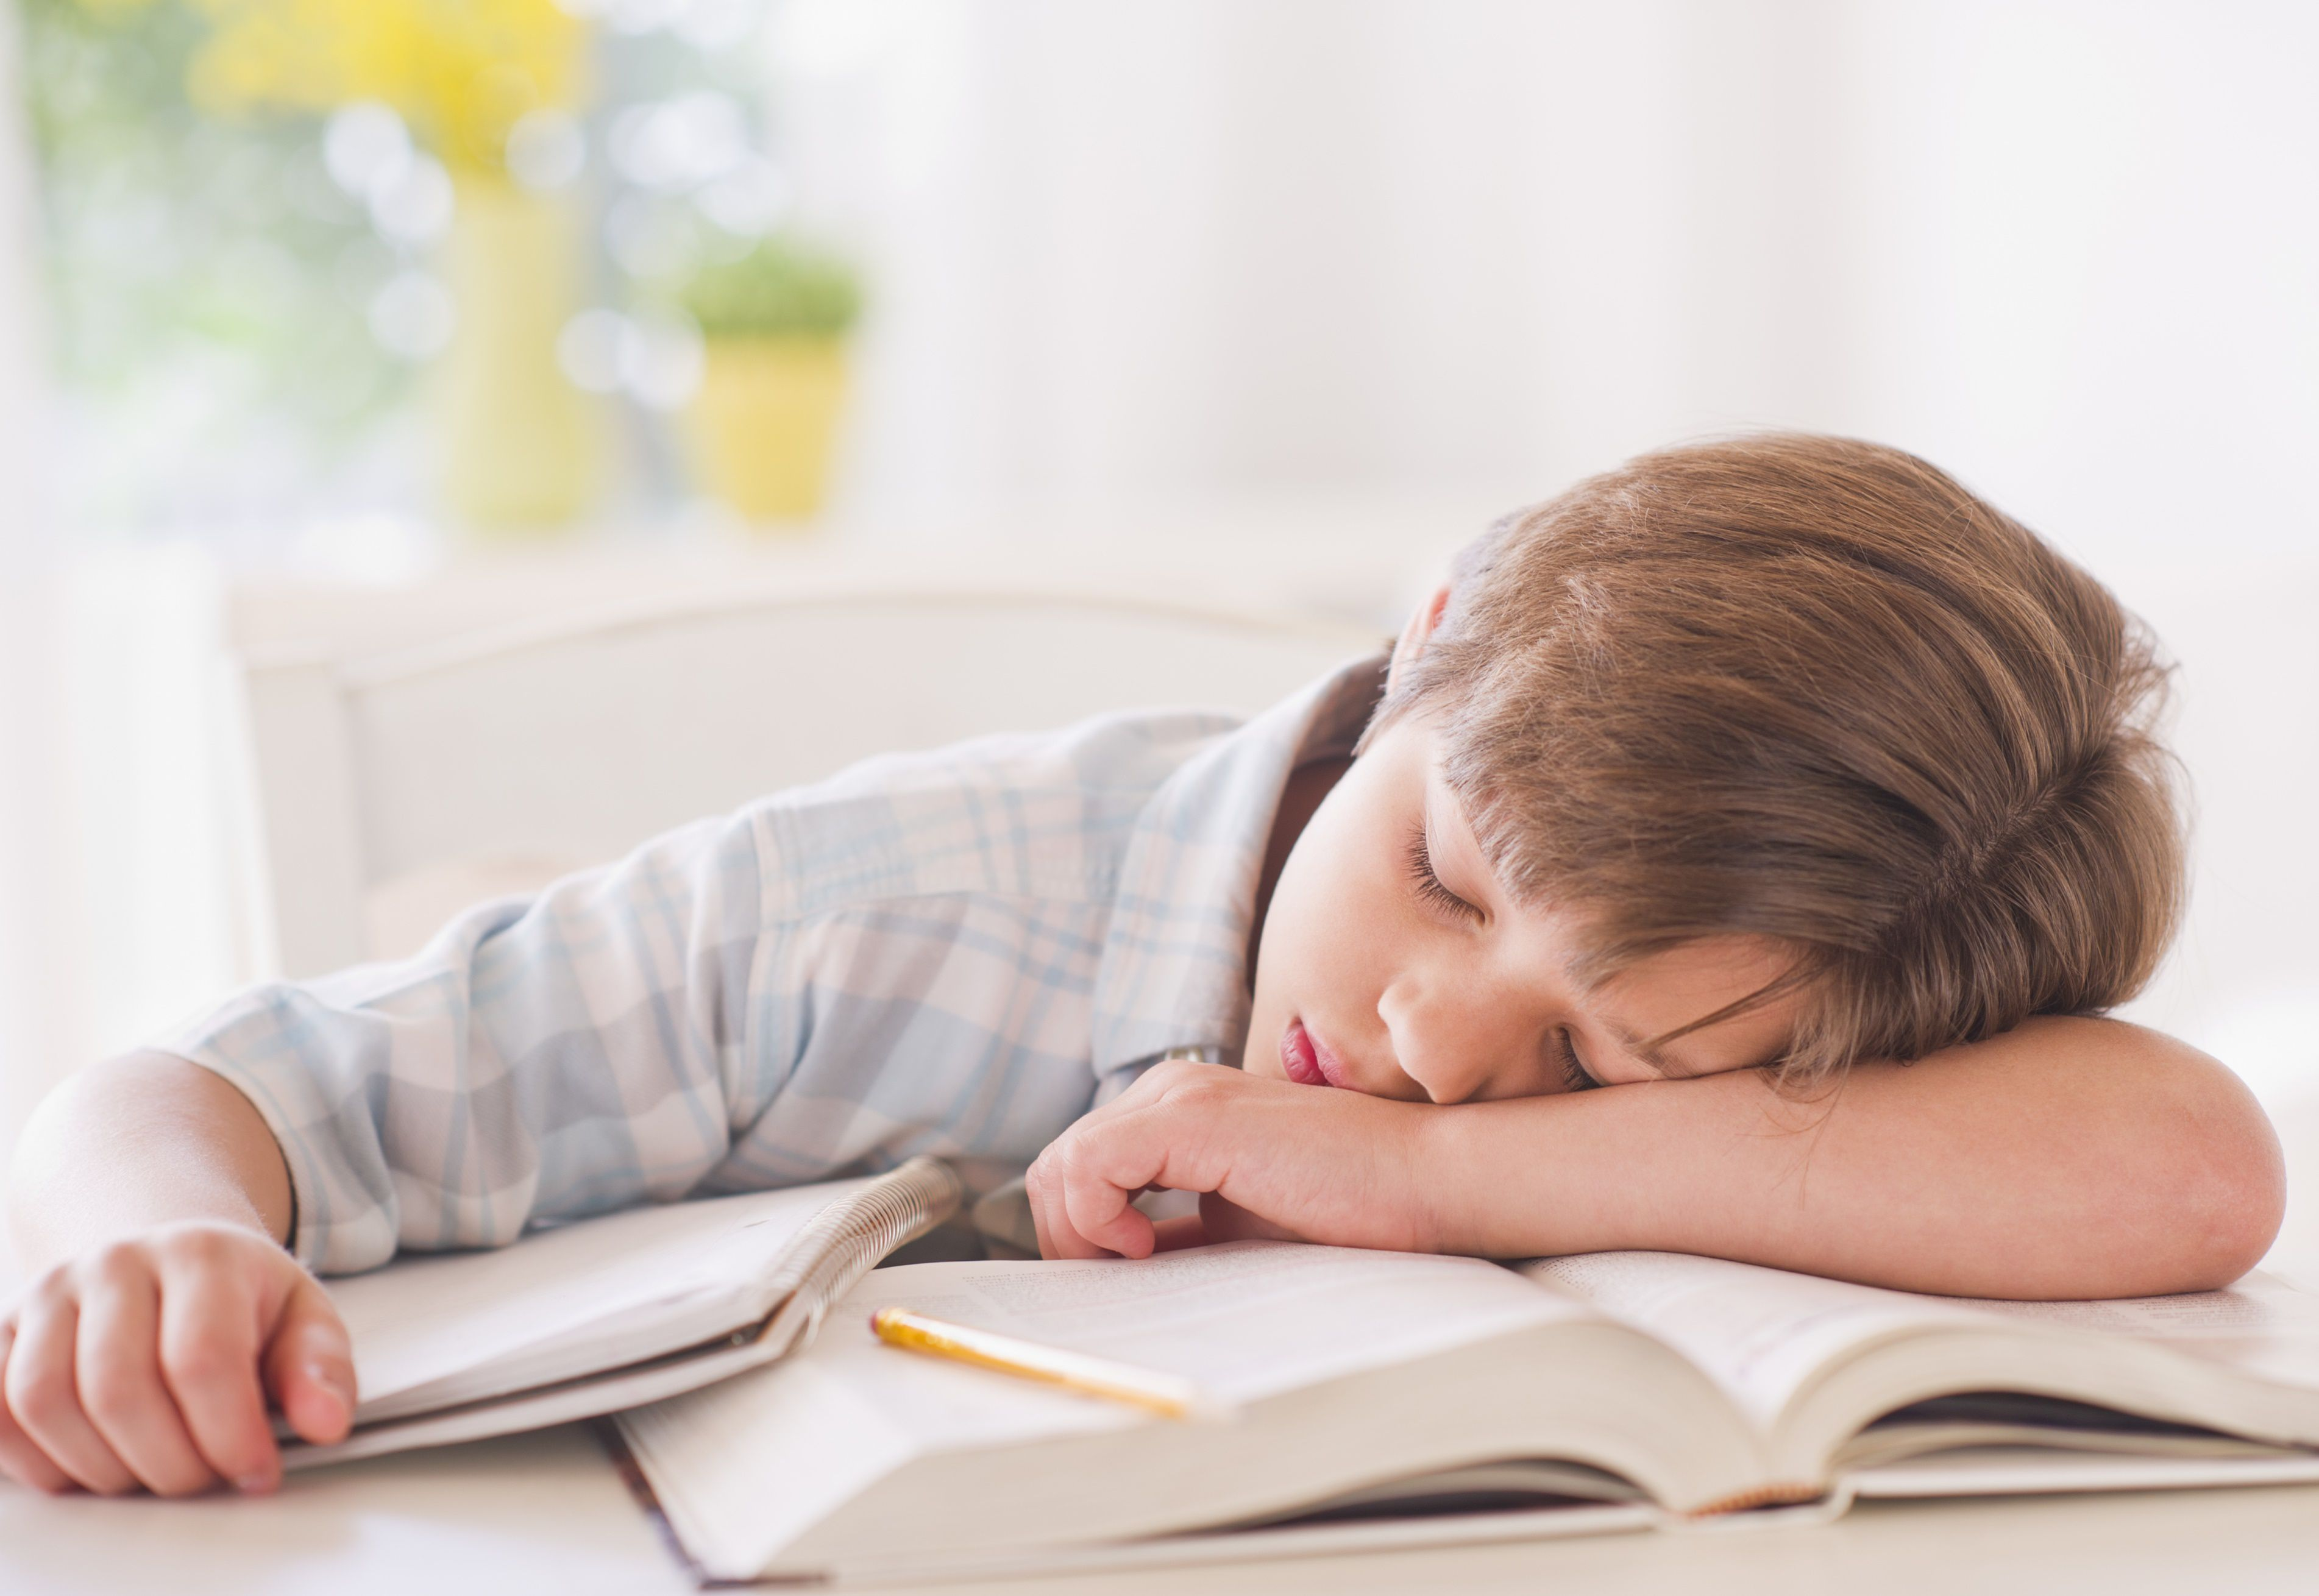 How To Tell If Your Child Is Not Getting Enough Sleep